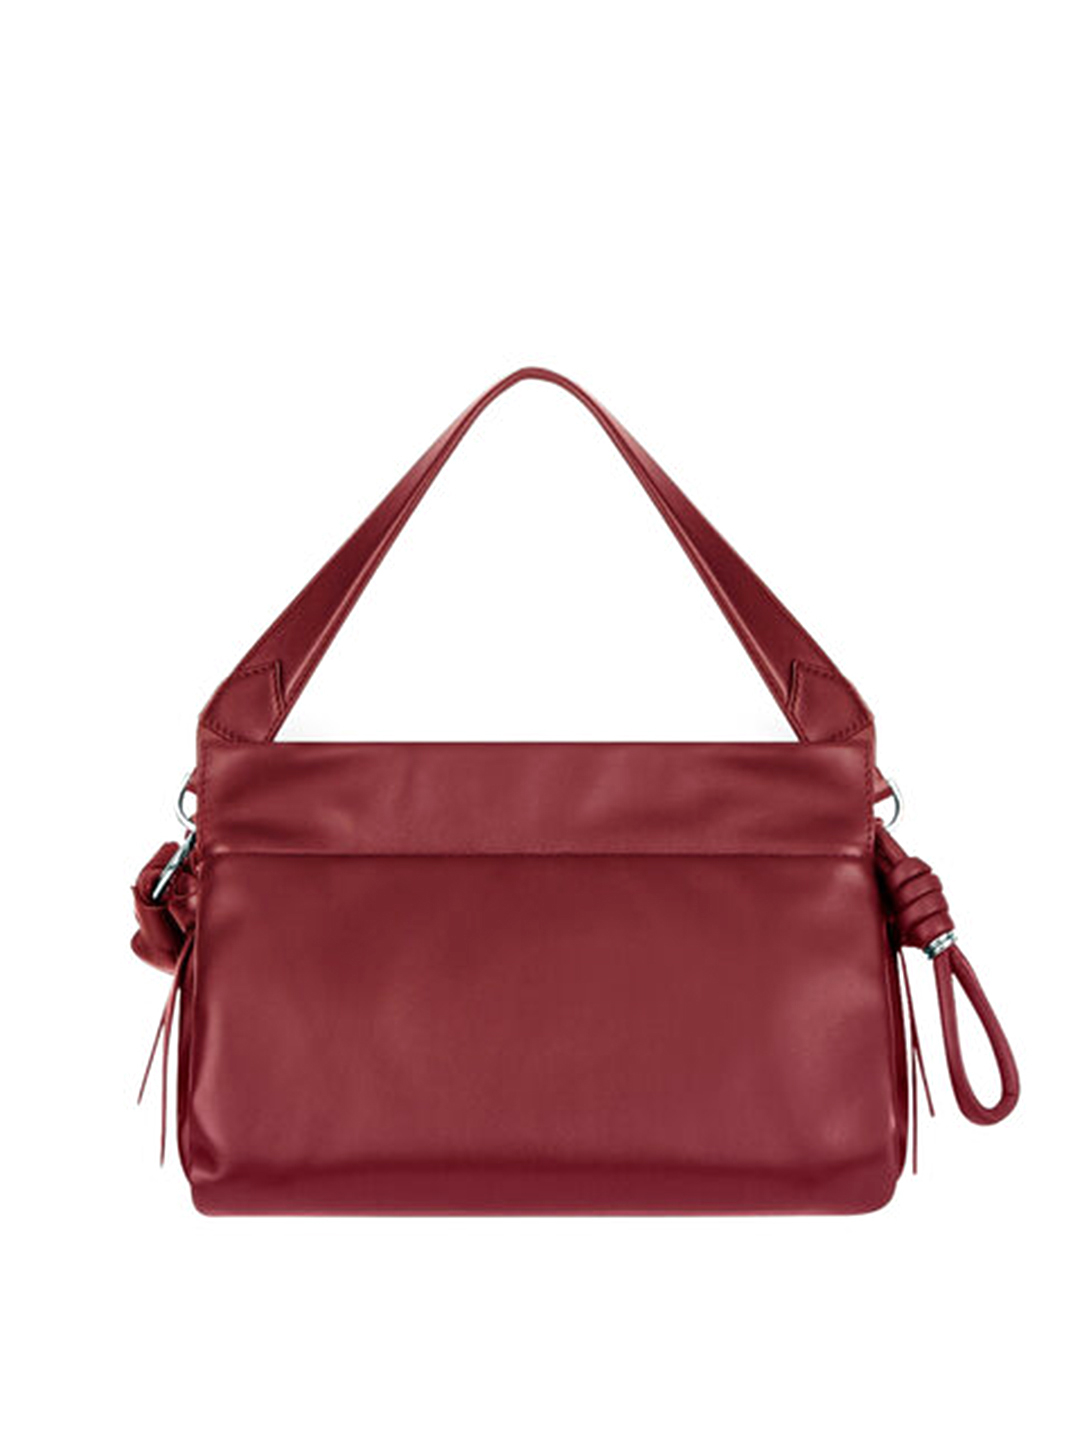 GIVENCHY Sac ID93 en cuir, taille moyenne Femmes Rouge